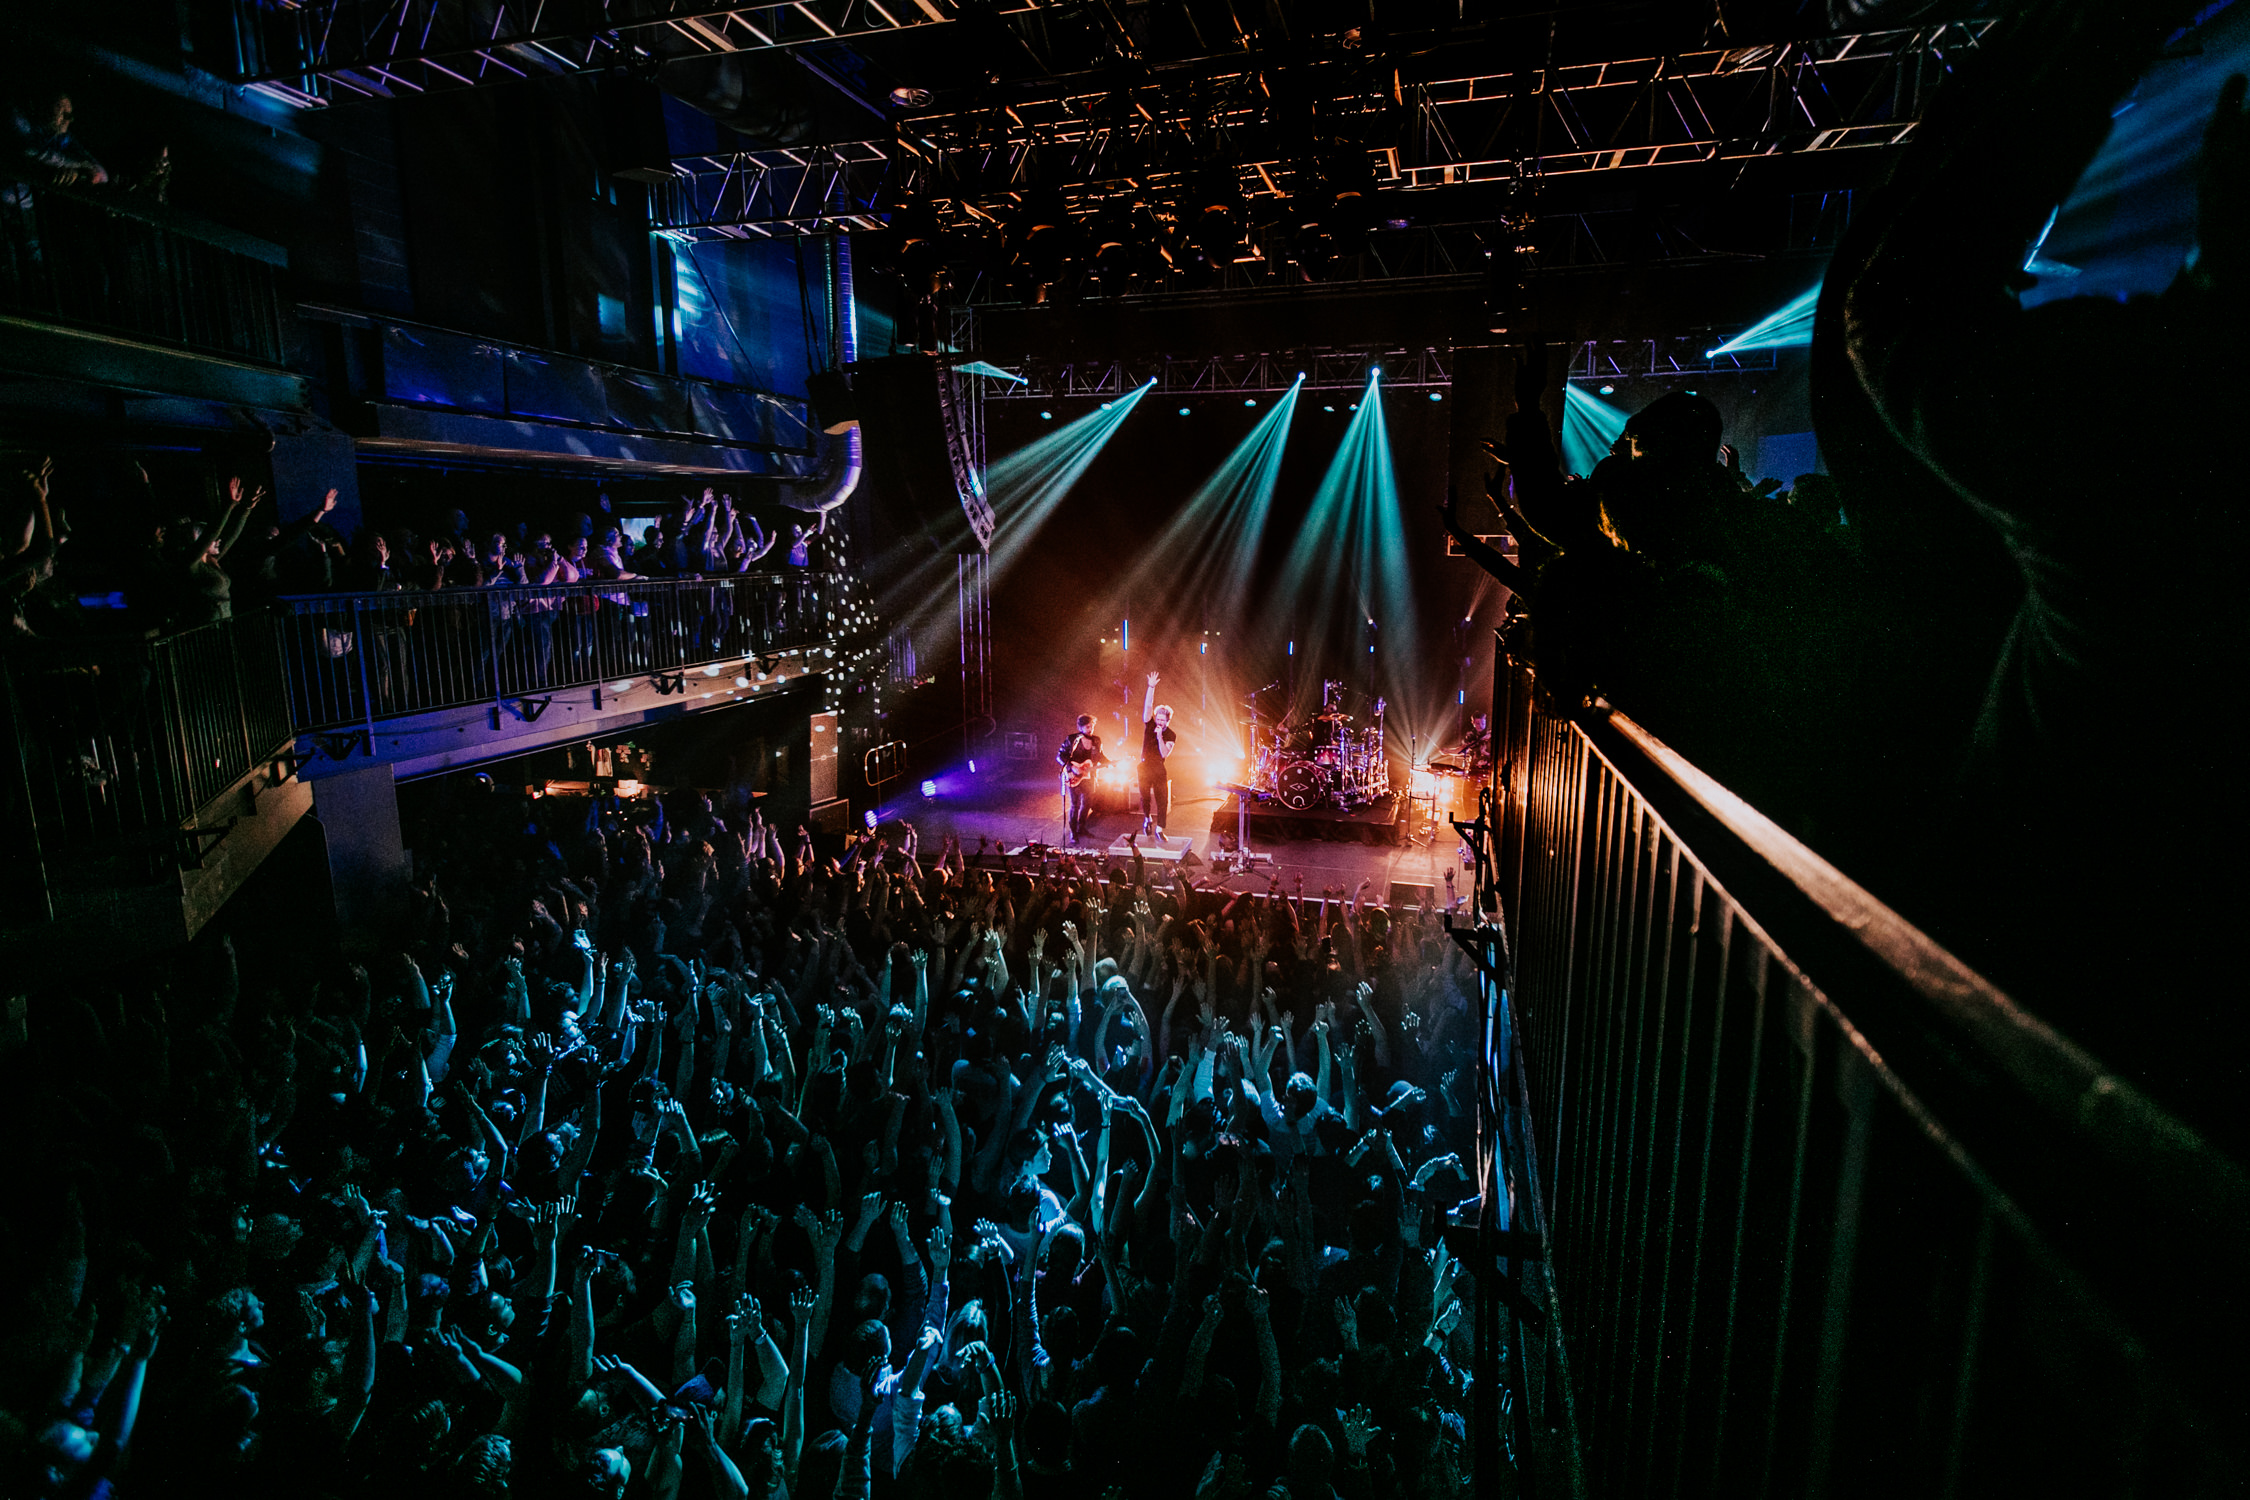 walk-the-moon-live-concert-balcony-shot-AnnaLeeMedia